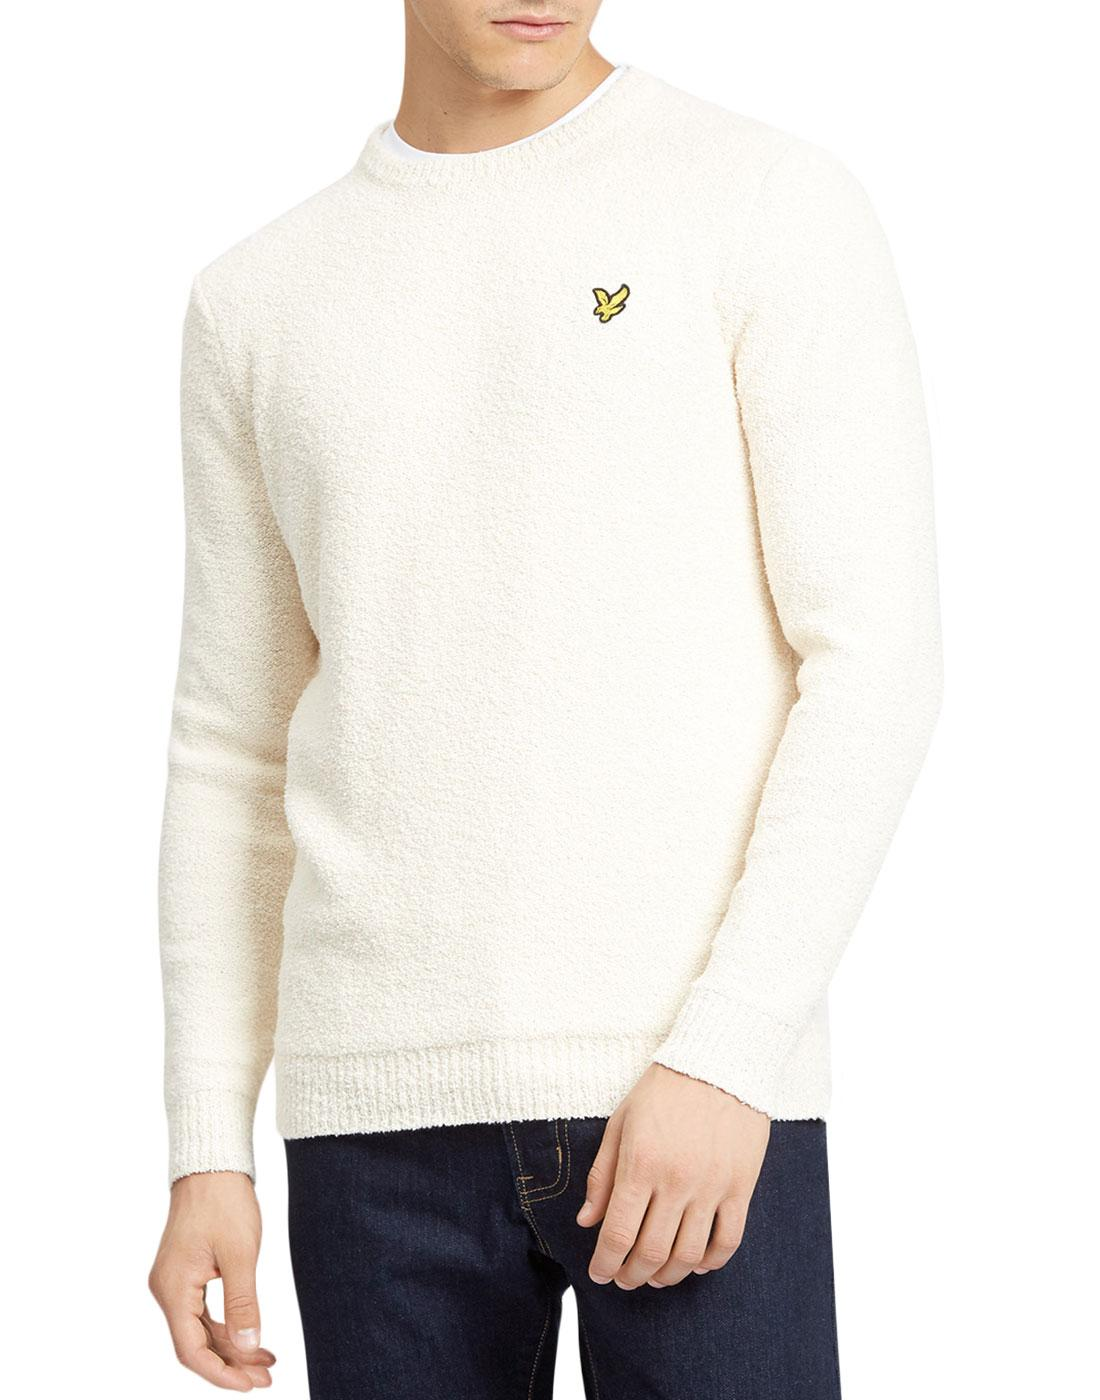 LYLE & SCOTT Retro 70s Terry Towelling Jumper (SW)